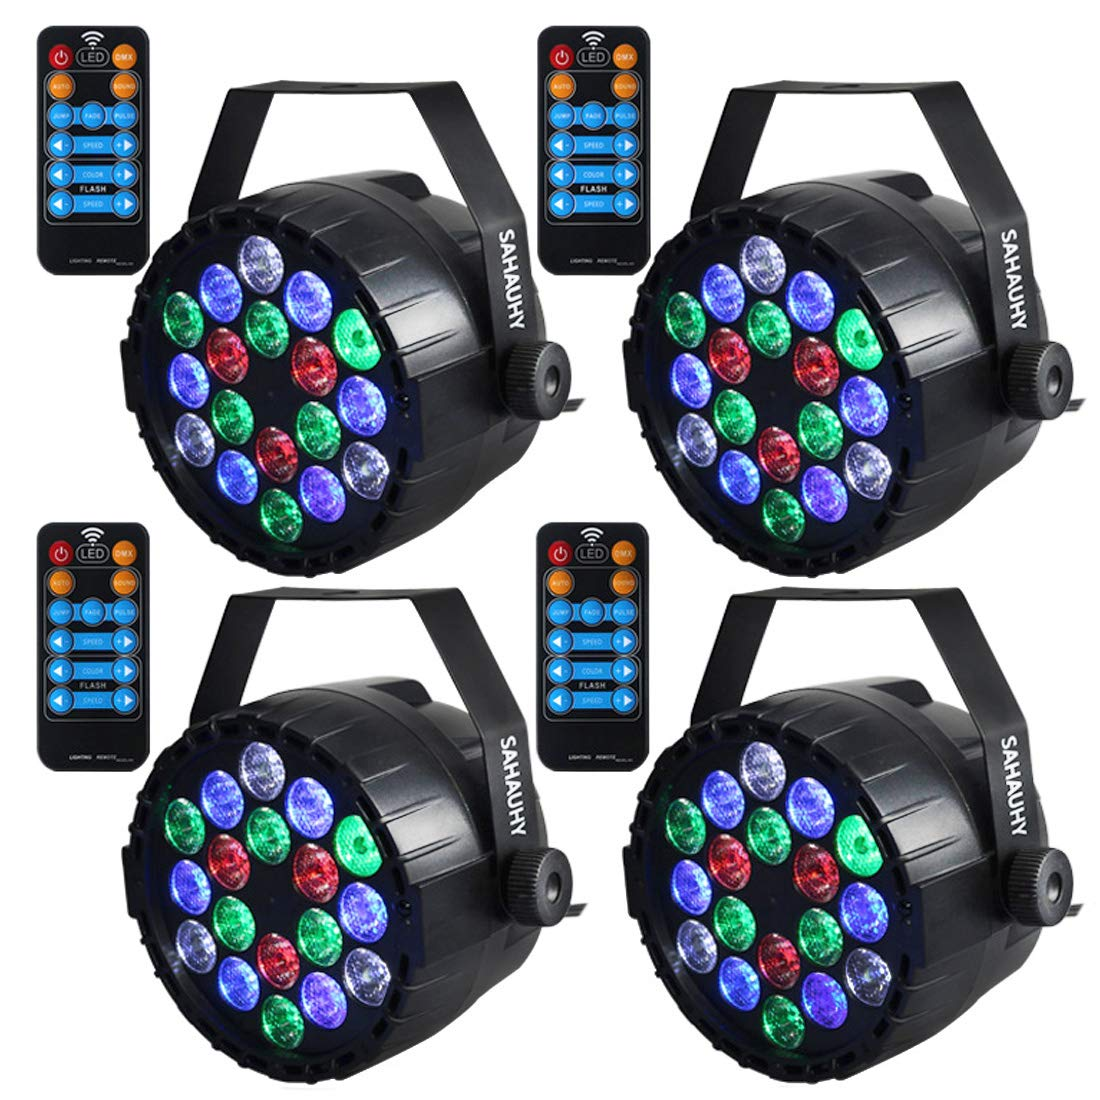 Musical Instruments & Gear Aspiring Led Moving Head Lighting Fixture For Parties And Events